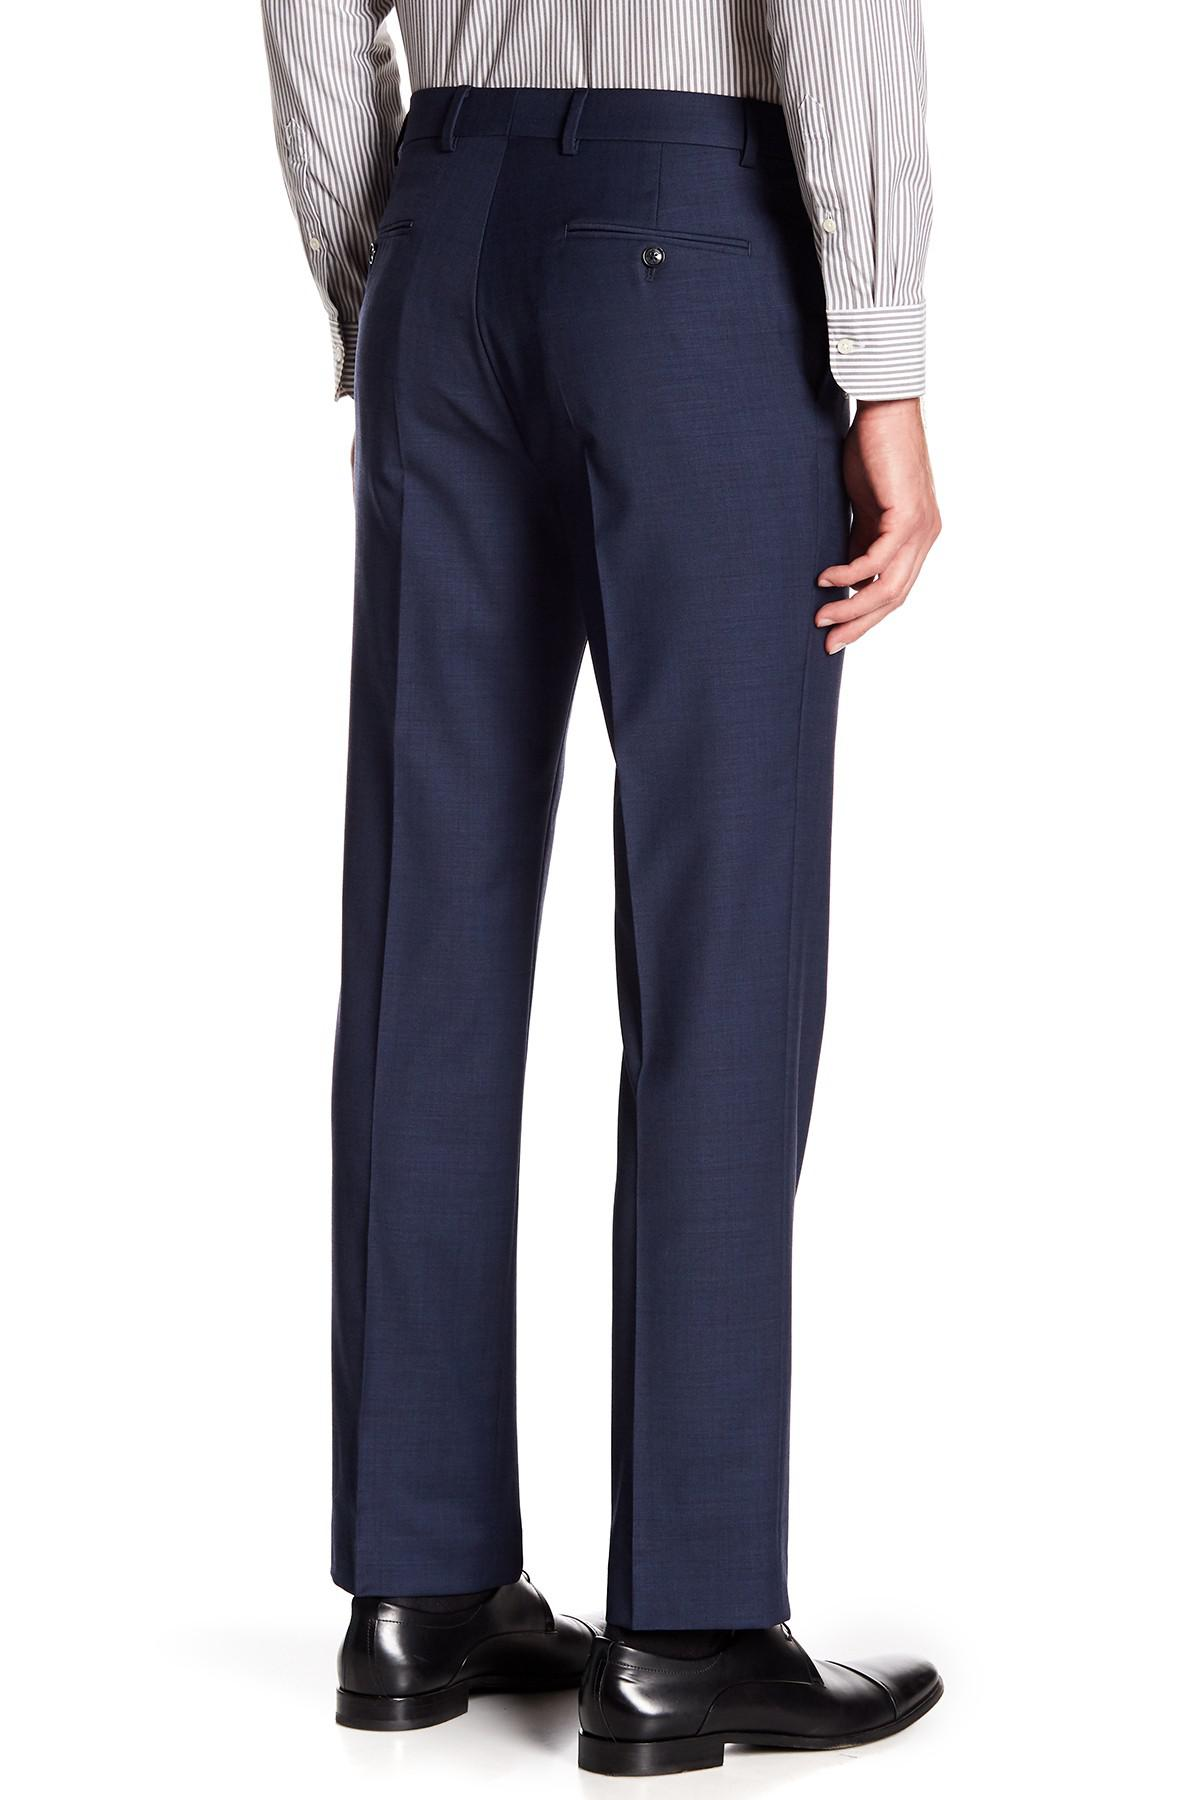 9169f791 Lyst Tommy Hilfiger Tyler Modern Fit Th Flex Performance Sharkskin. Tommy  Hilfiger Tyler Blue Pants Best Style Man And Woman